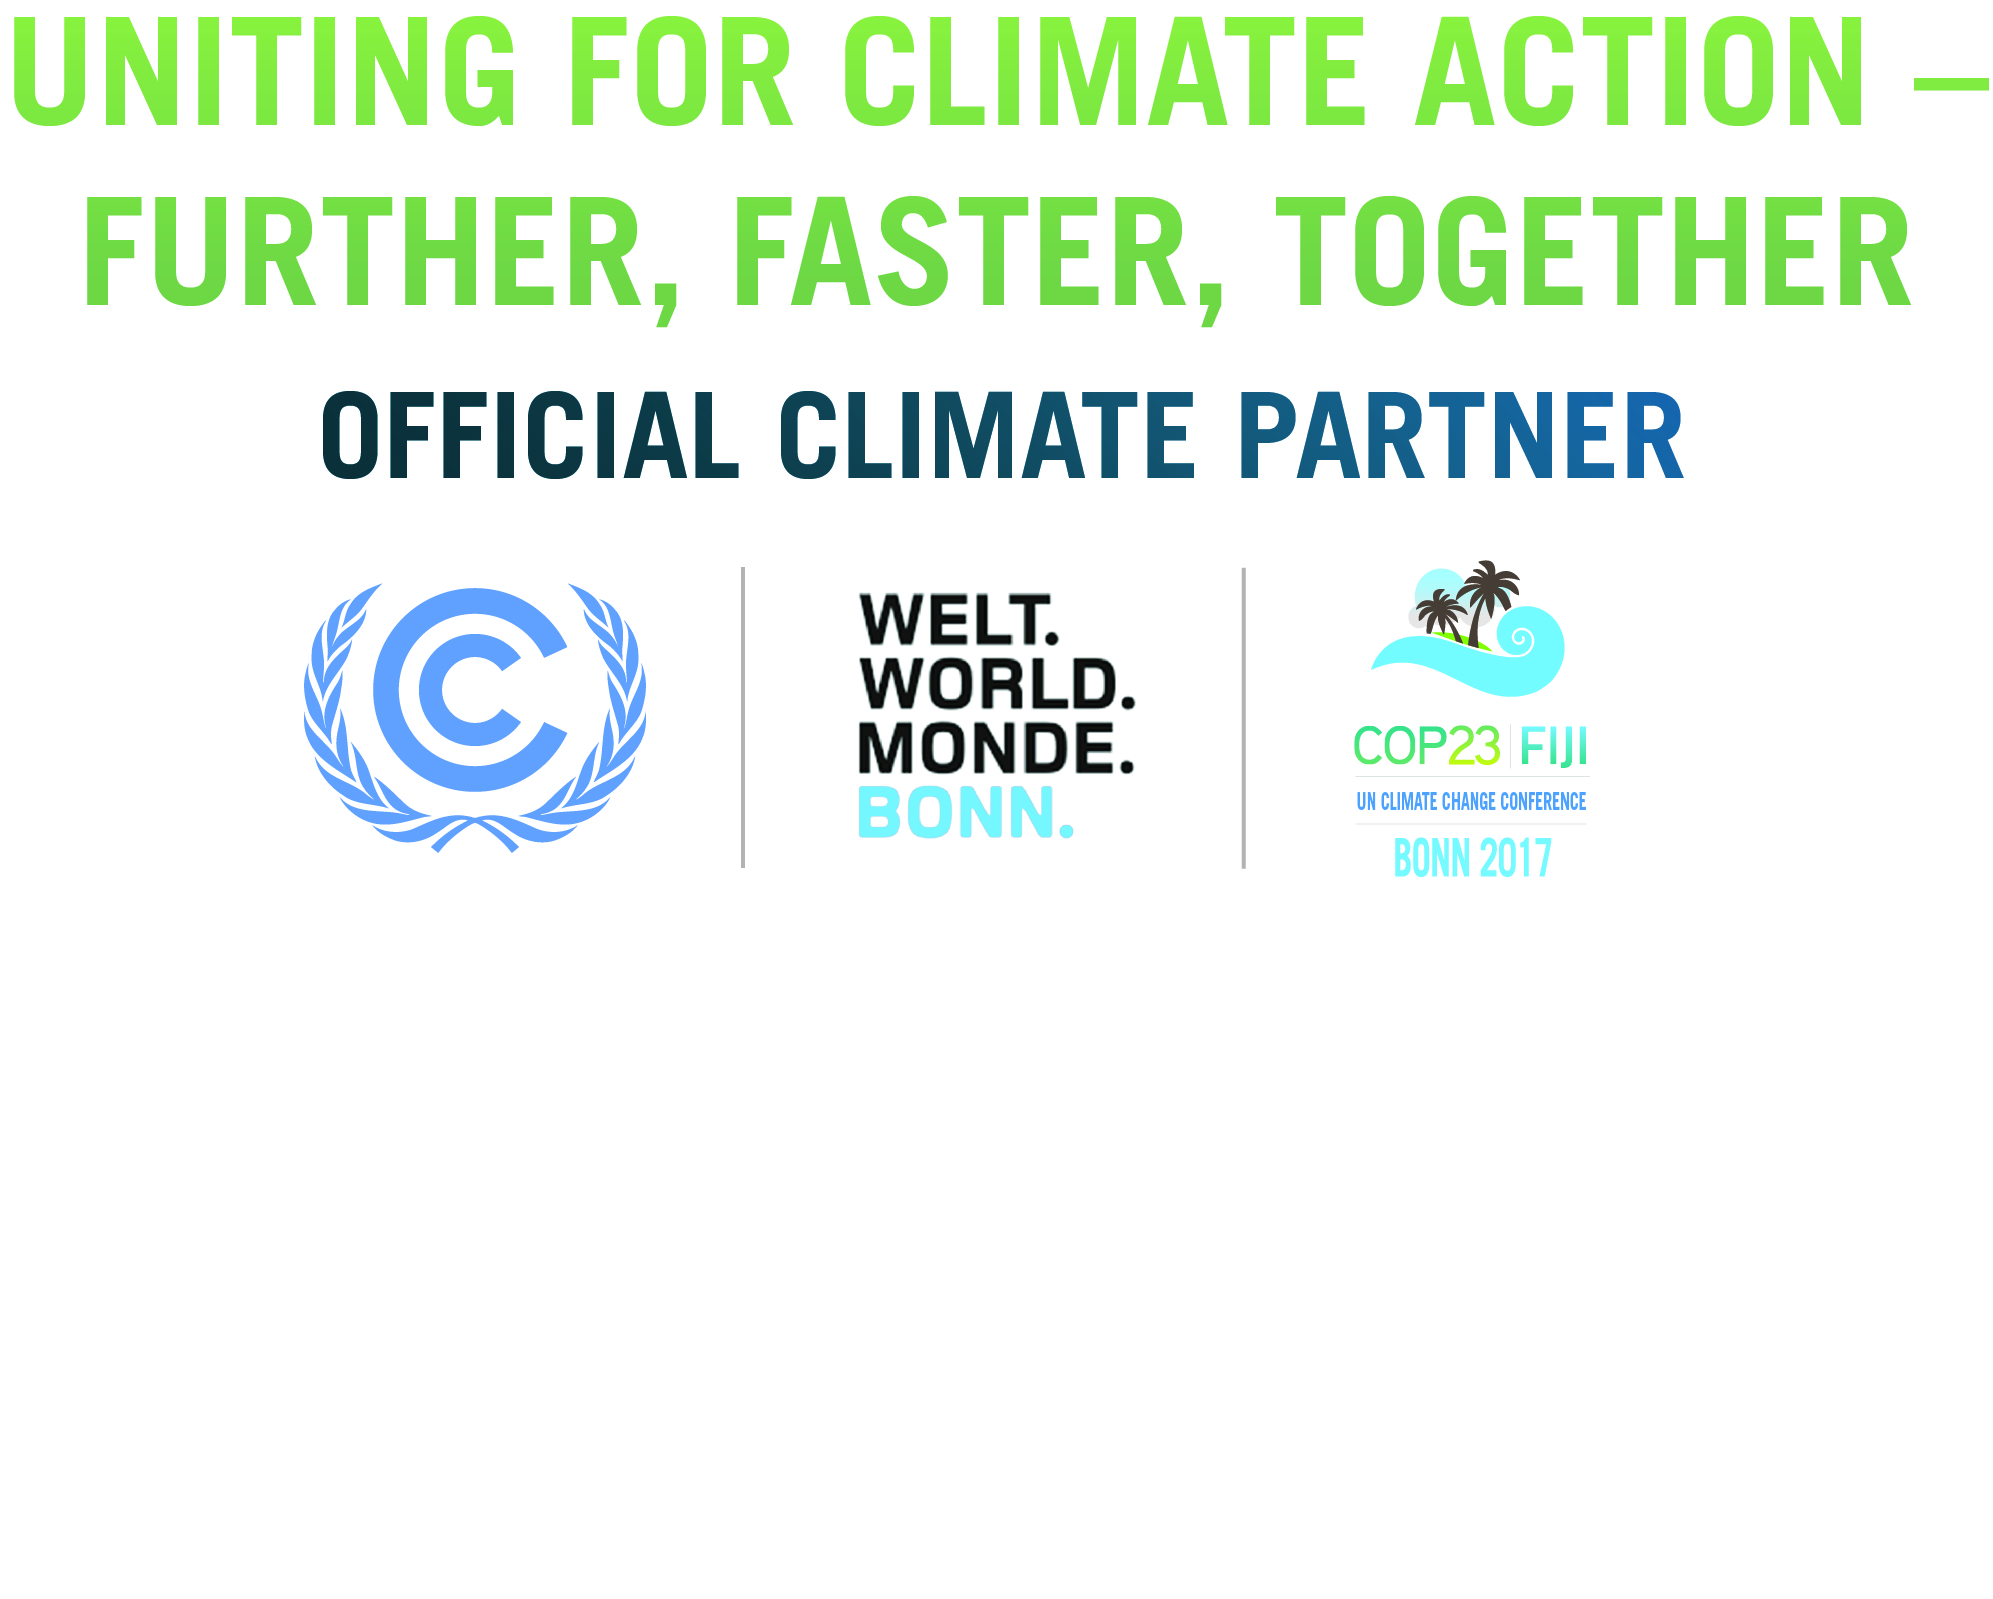 COP23 BonnCity Official Climate Partner Logo